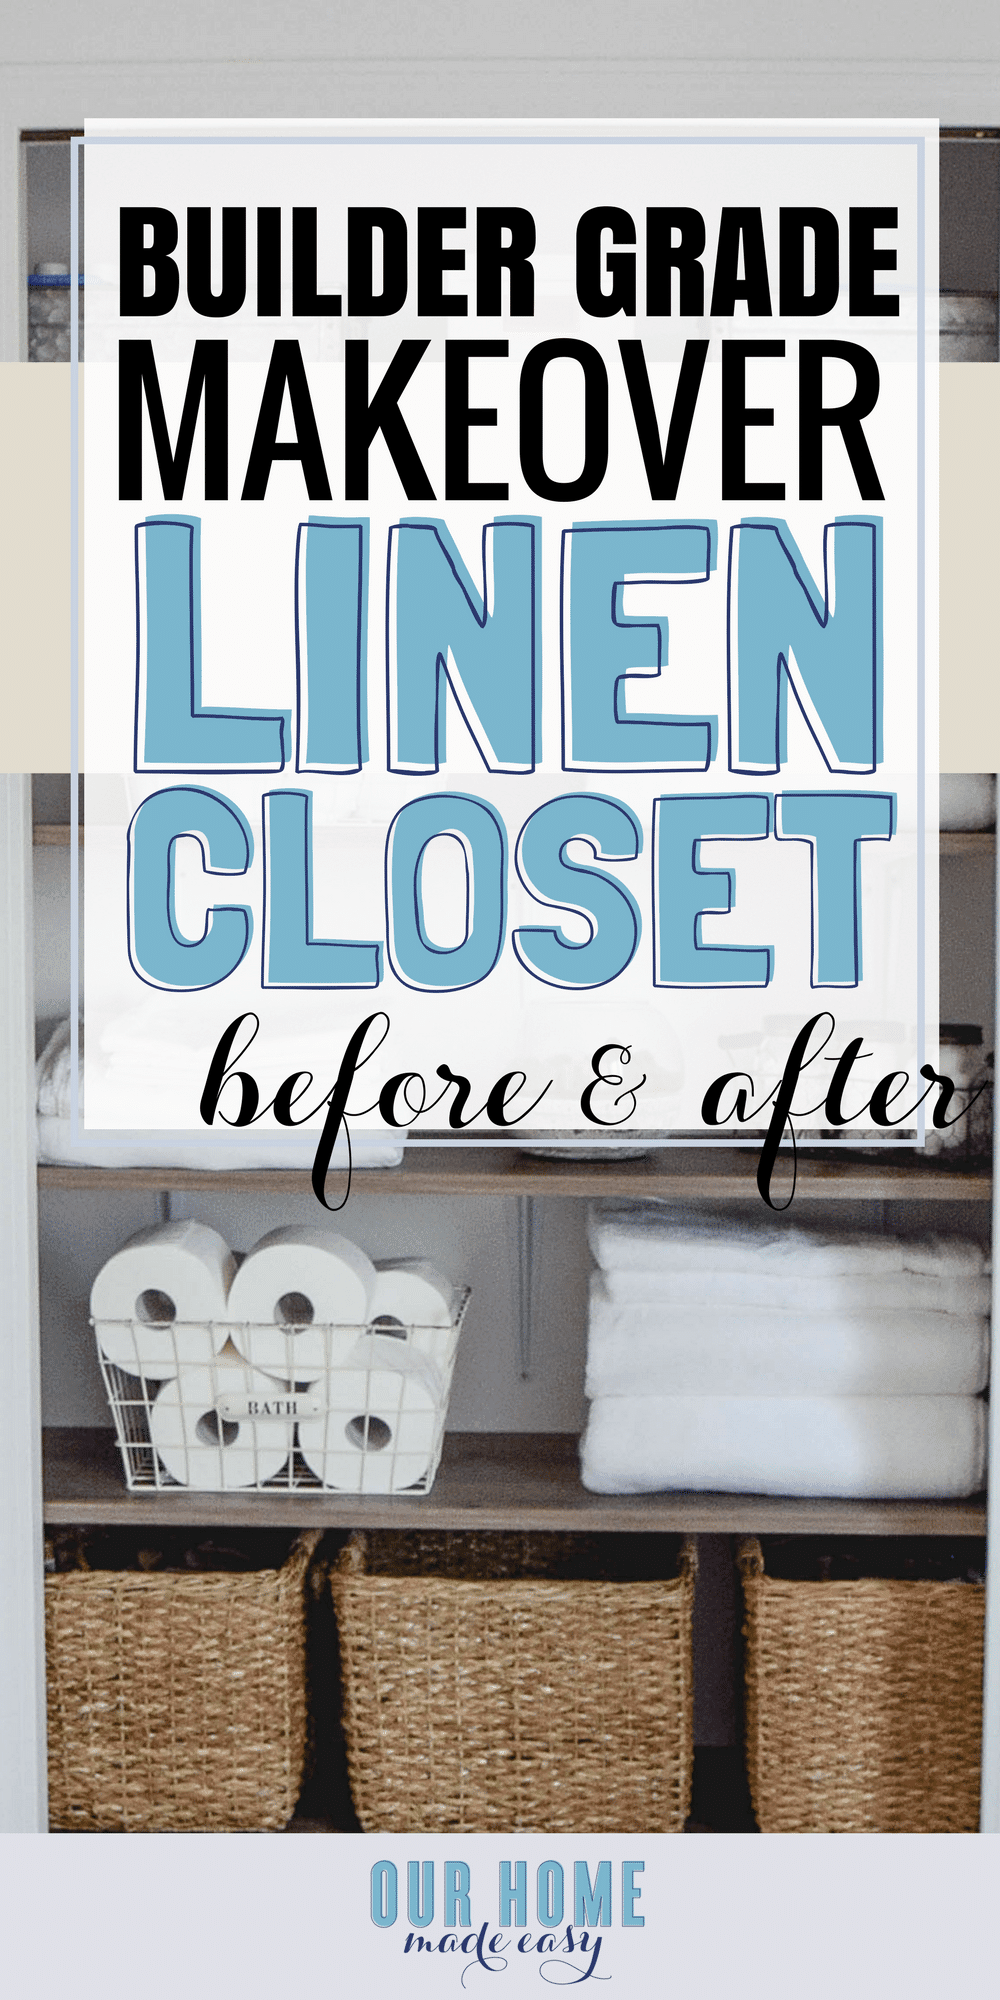 A DIY but custom shelving system for a linen closet makeover. Check out the organizational ideas and how to DIY your own shelves! #organization #linencloset #bathroomcloset #organized #declutter